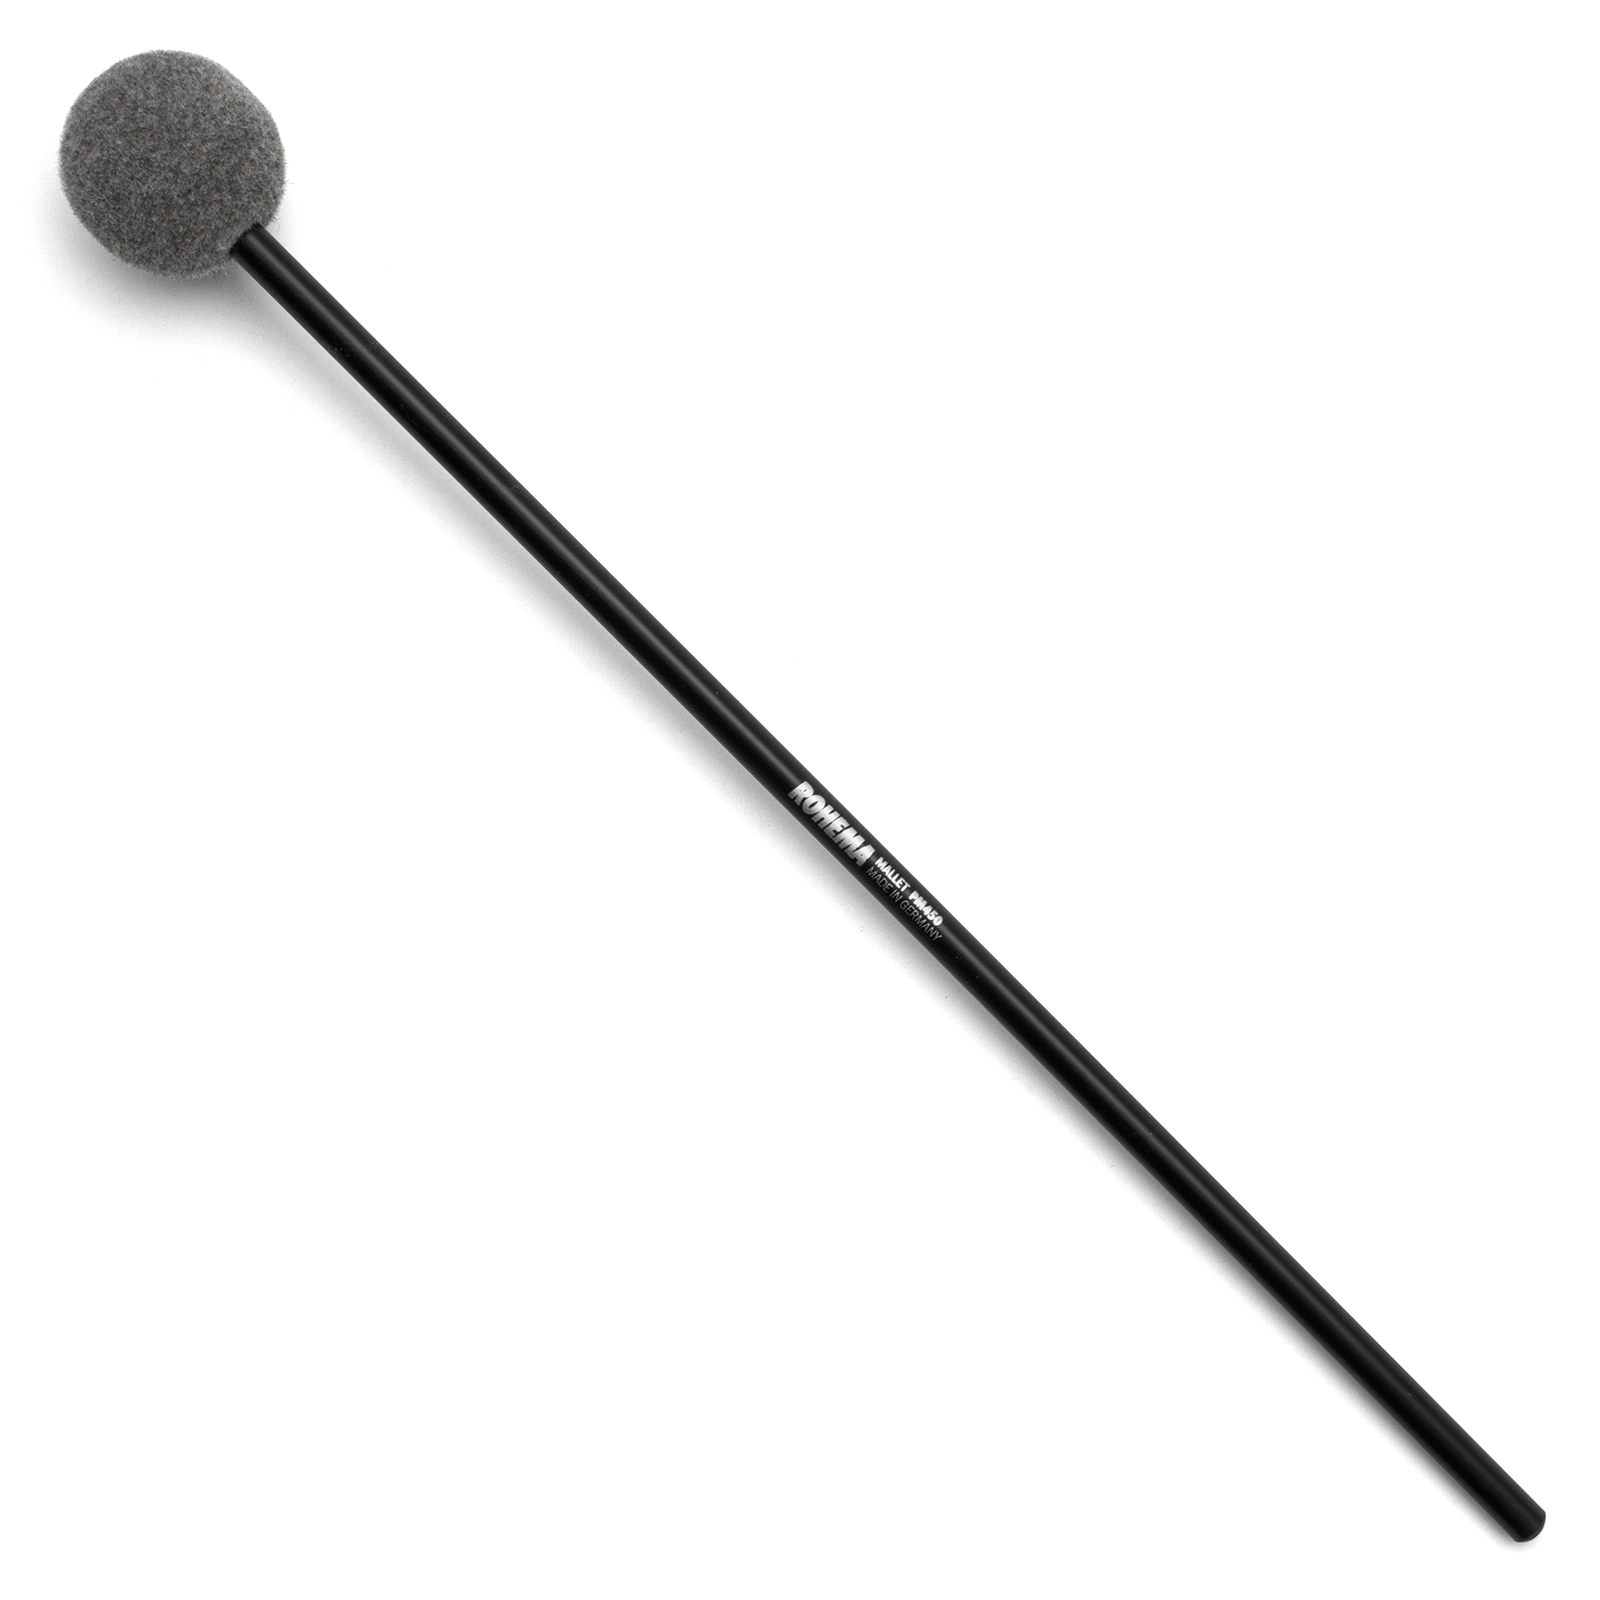 PLASTIC MALLET 39CM - FELT HEAD 4CM MEDIUM HARD